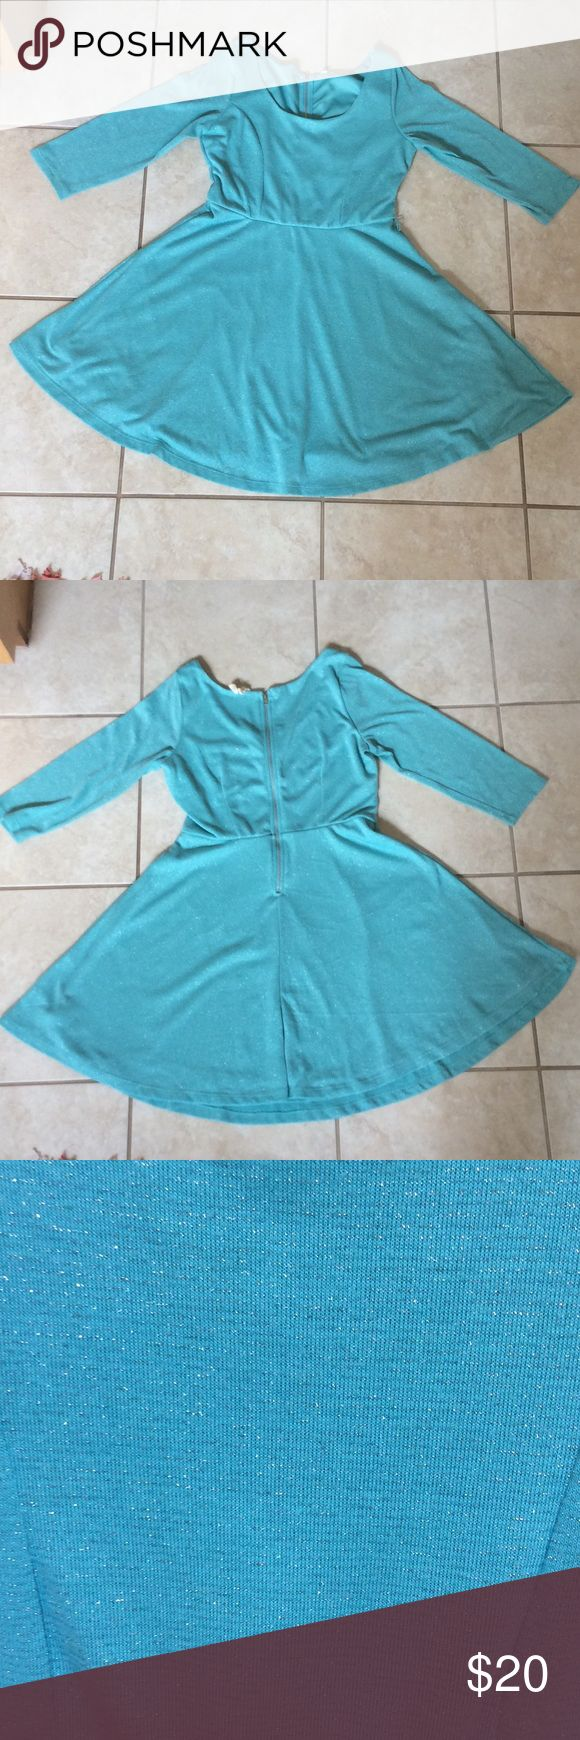 A Slightly Sparkly Blue Dress A cute, slightly sparkly, blue dress. There are silver stripes that are shown in the third picture. It falls around the knees, maybe a bit shorter depending on height. Red Camel Dresses Midi